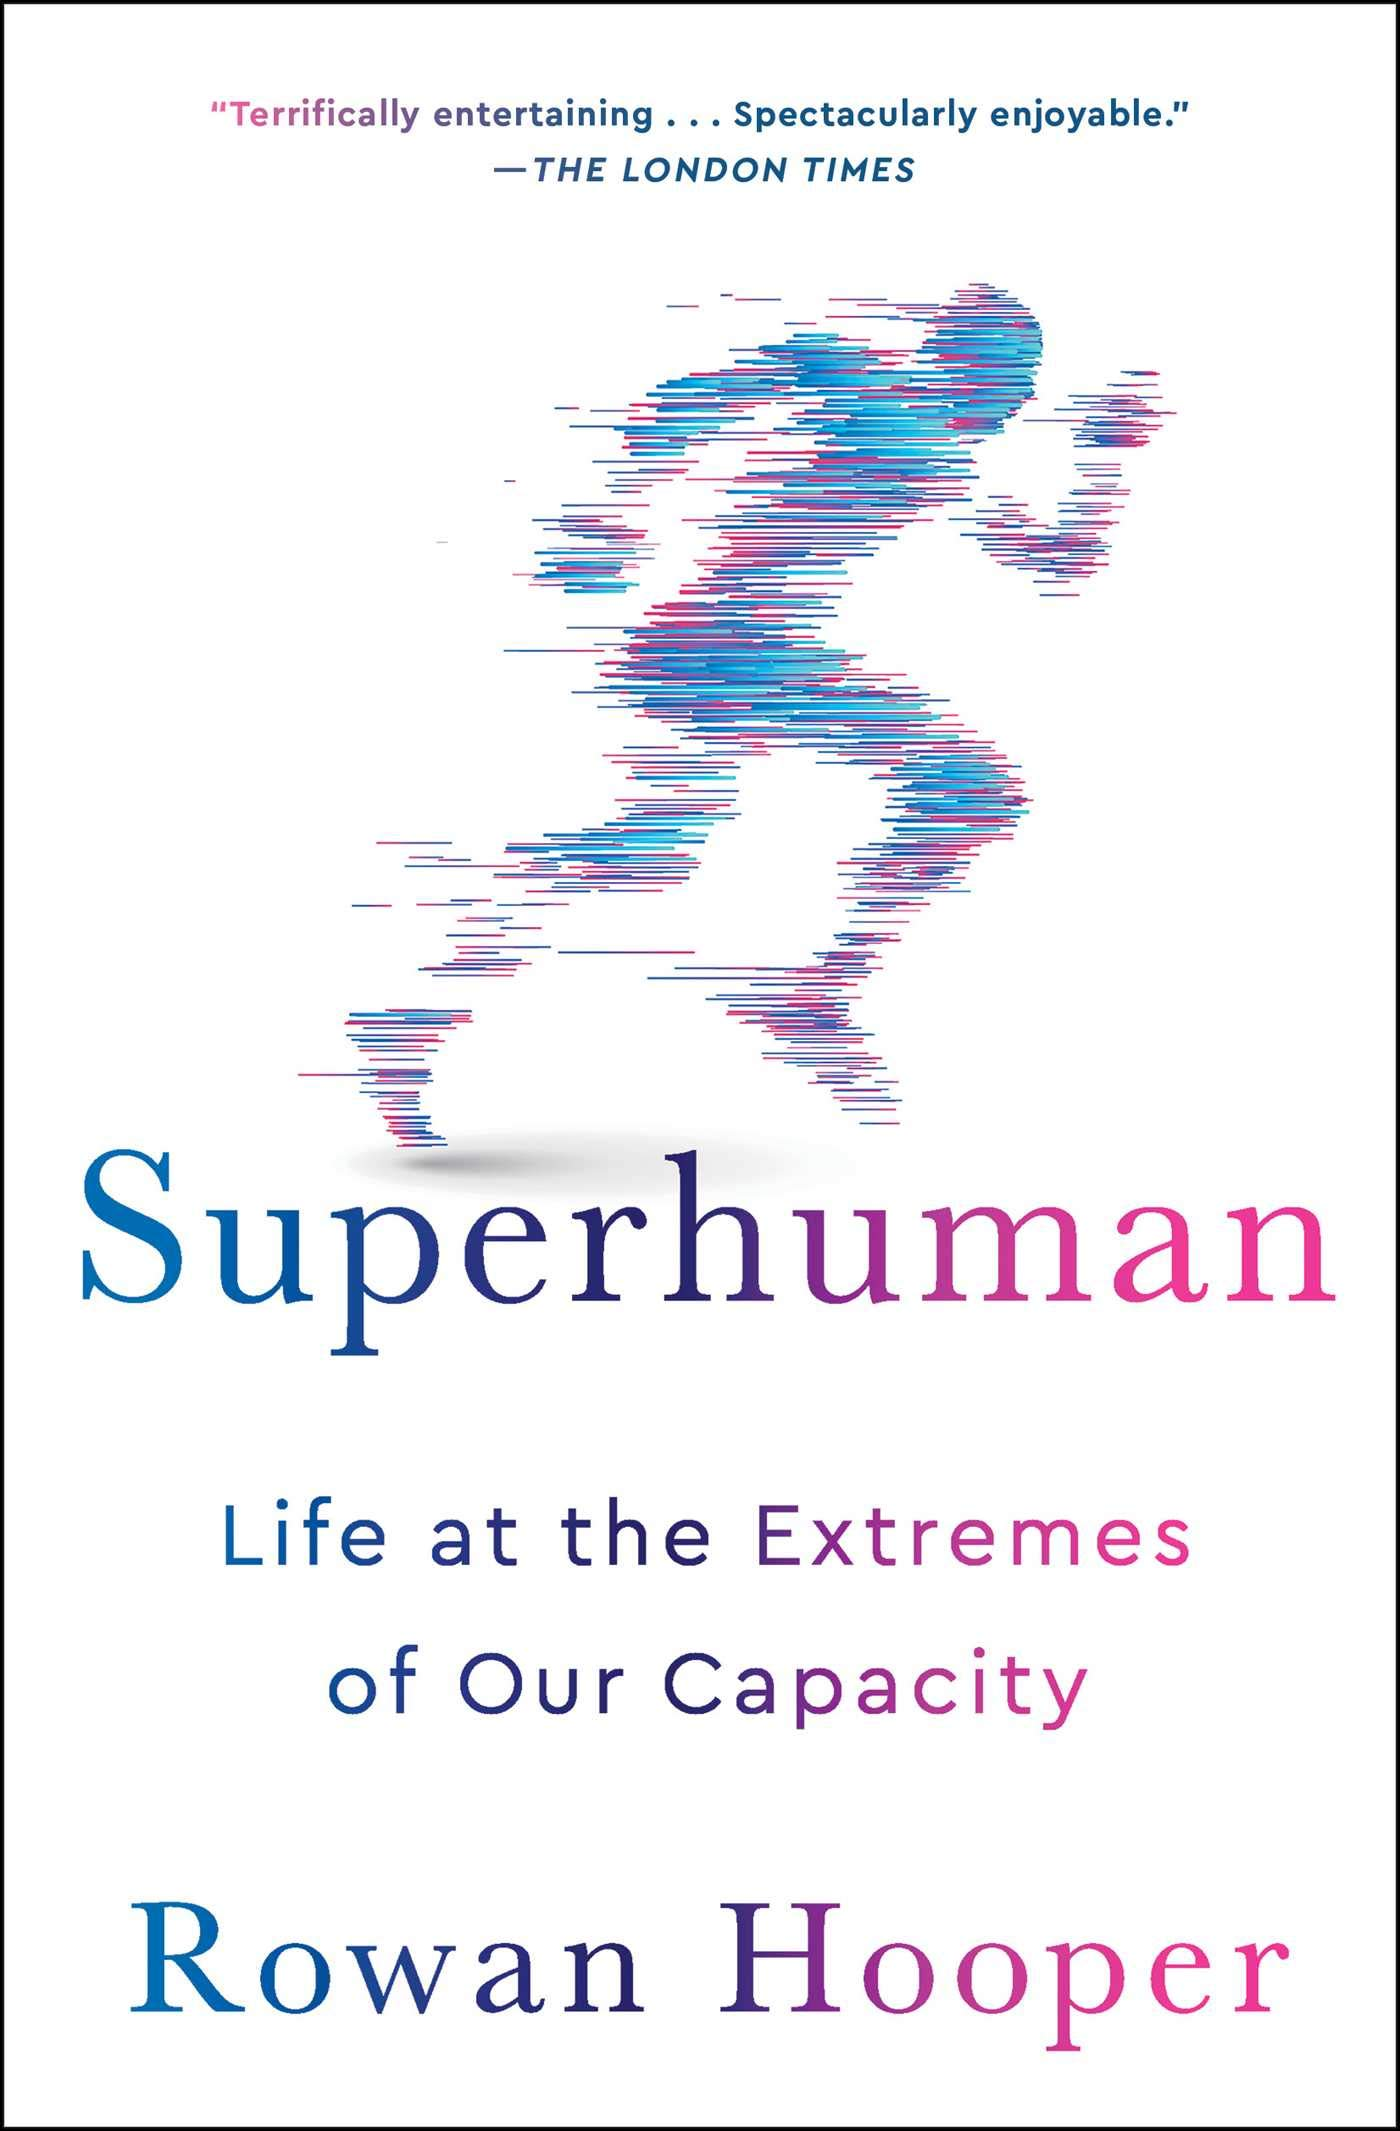 Amazon fr - Superhuman: Life at the Extremes of Our Capacity